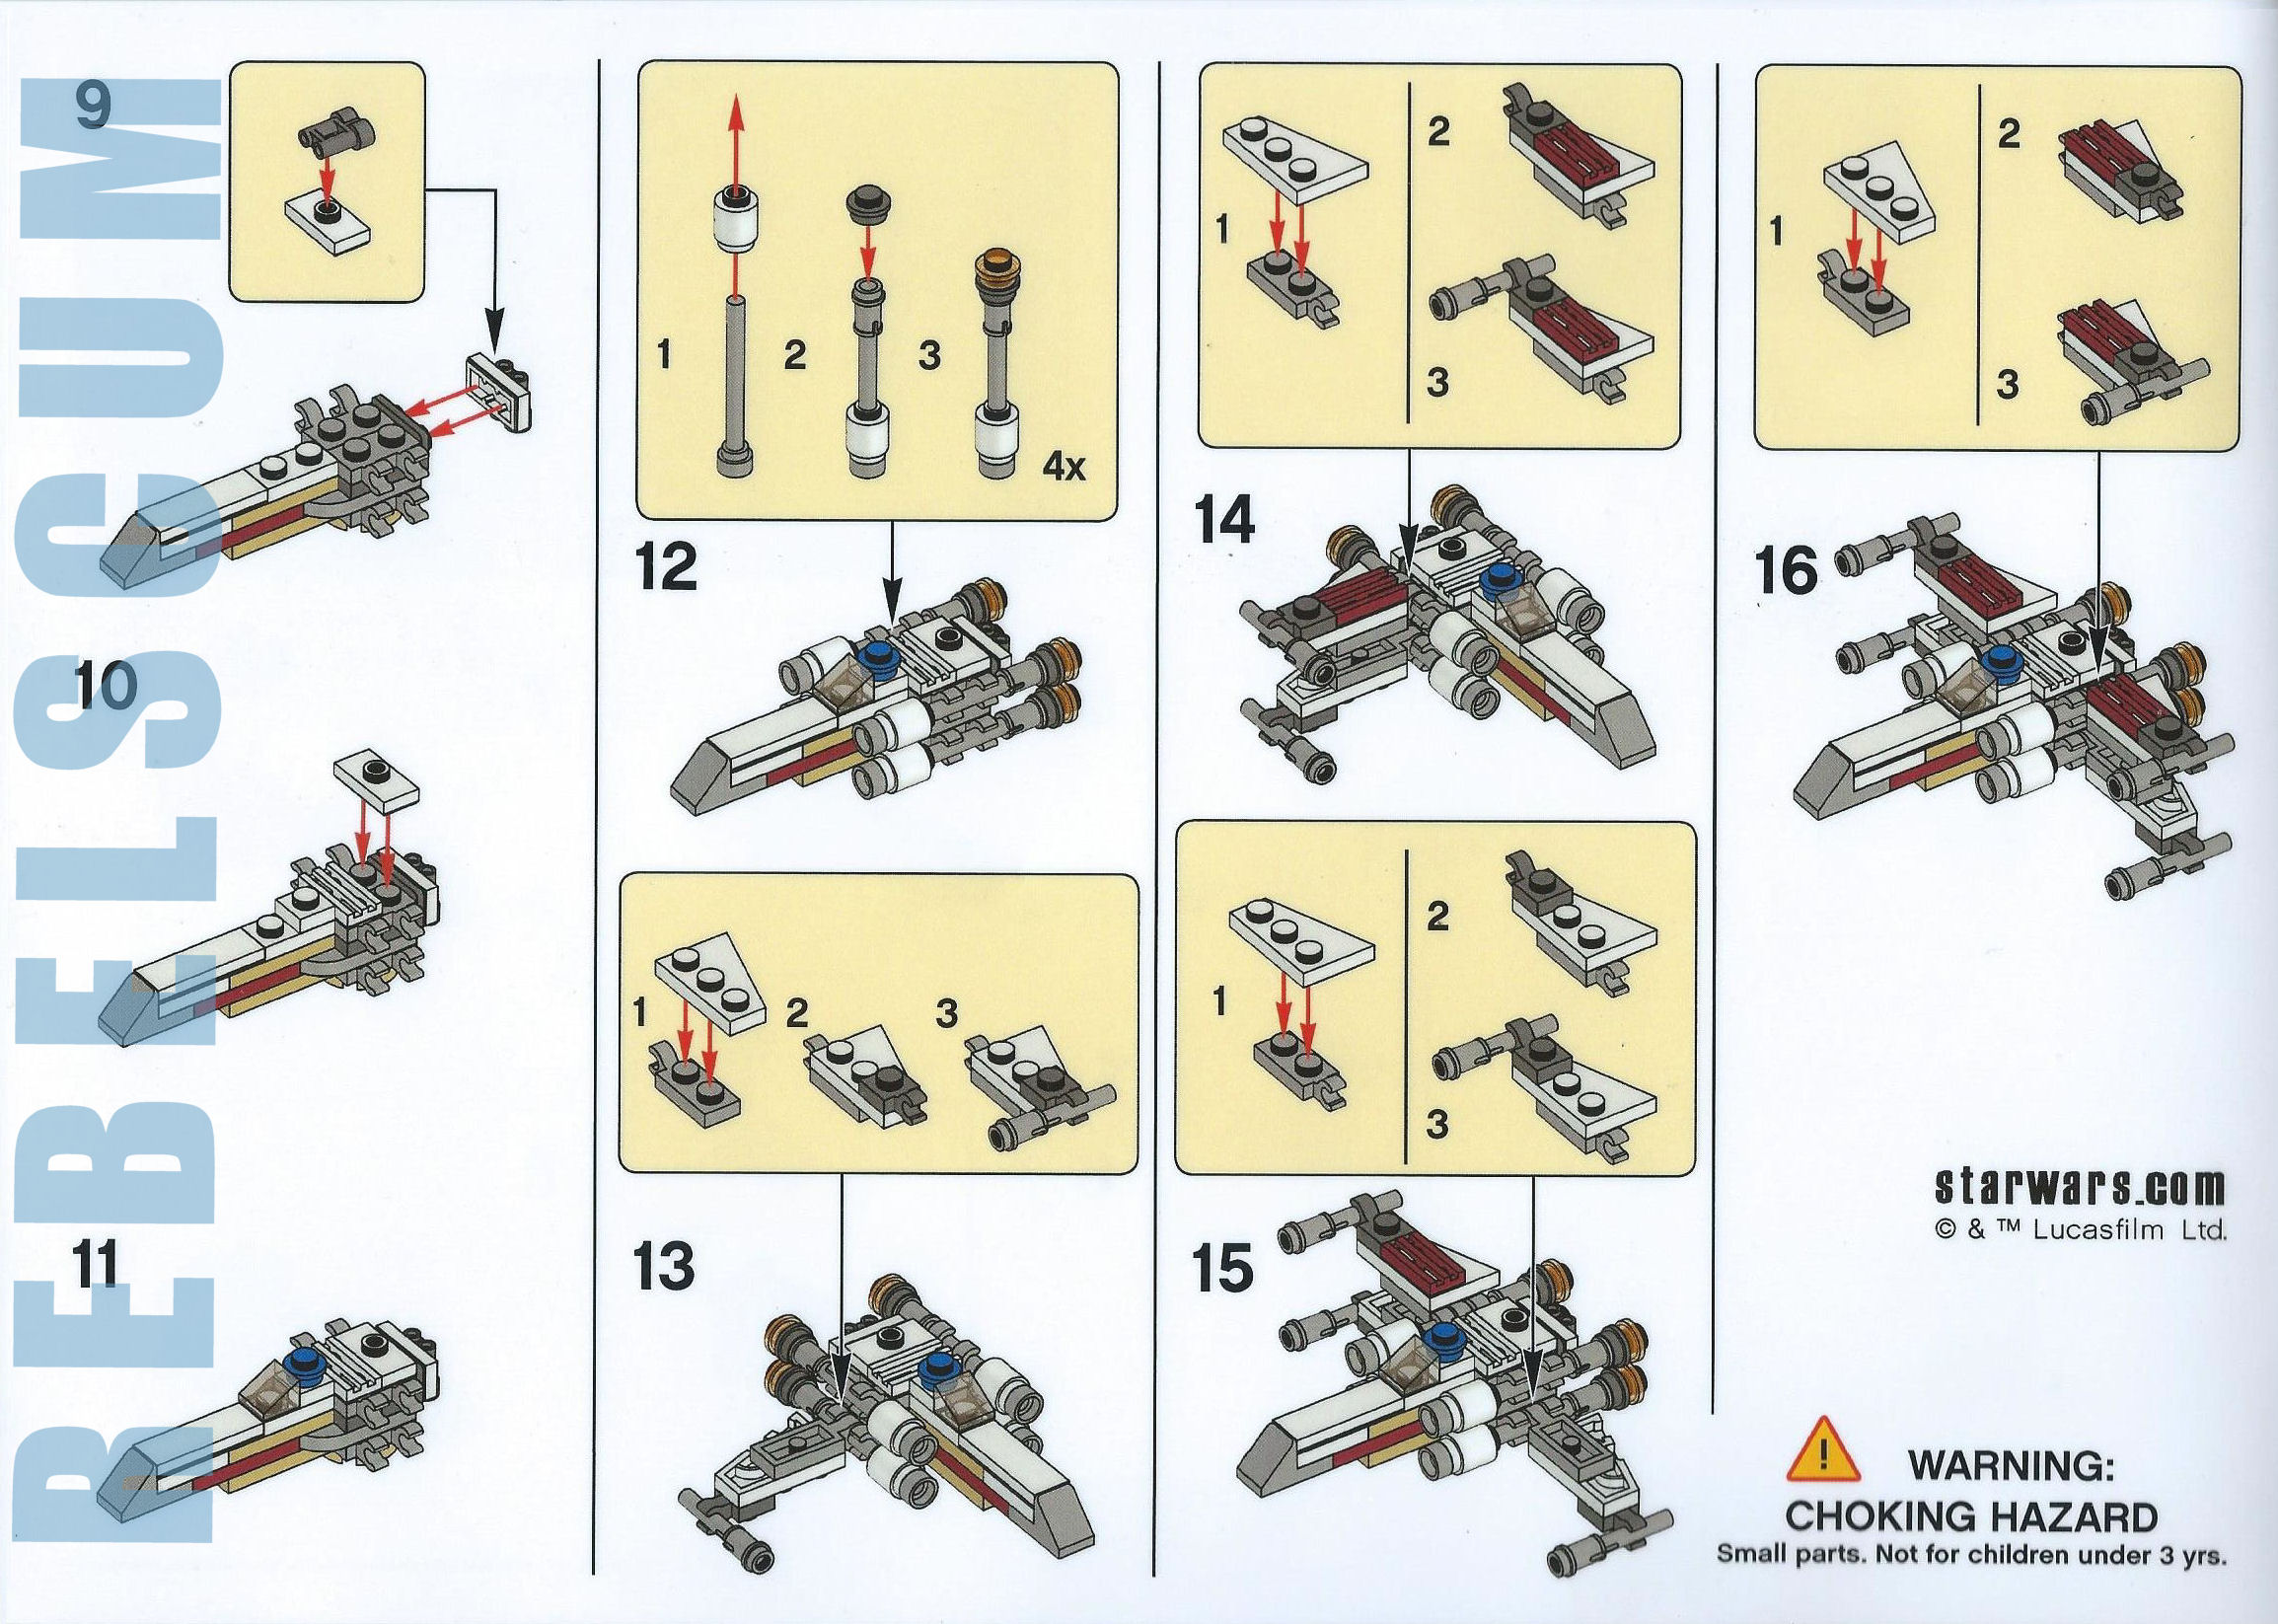 Building Instructions for LEGO Star Wars May the 4th Make